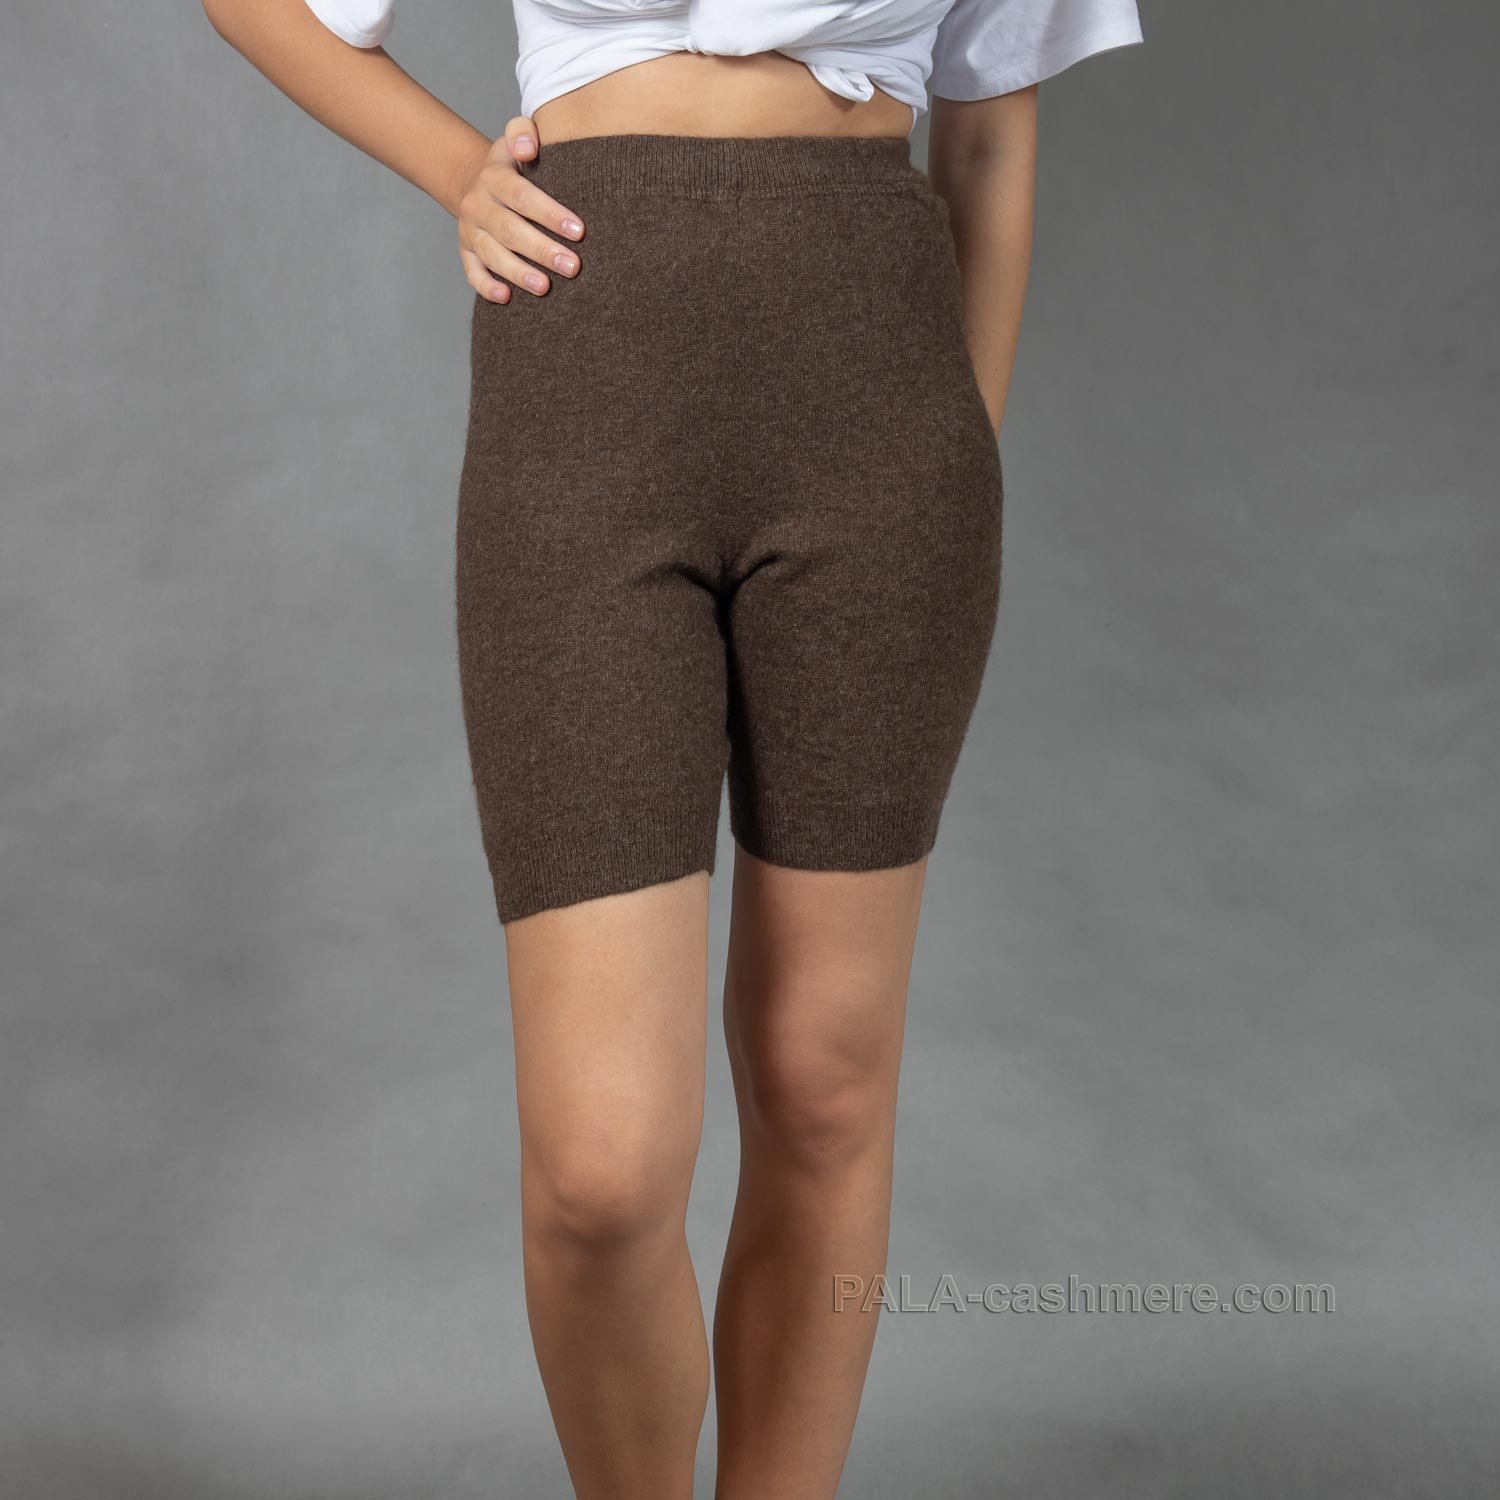 Women's wool shorts for clothes